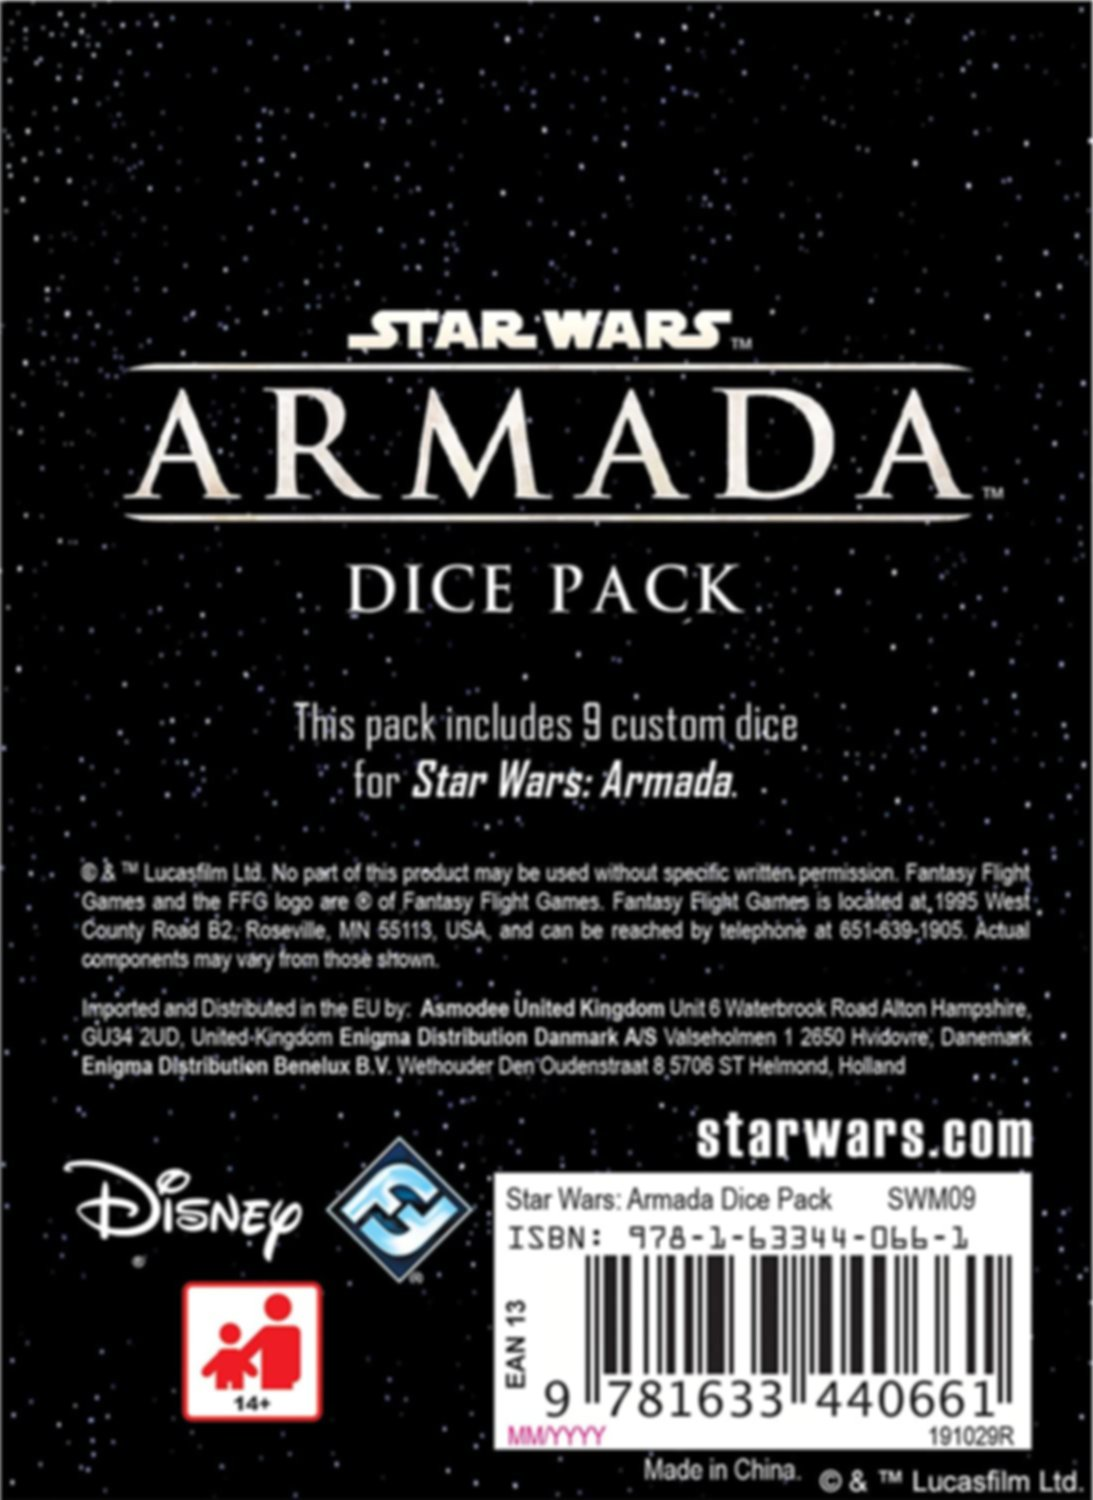 Star Wars Armada: Dice Pack back of the box